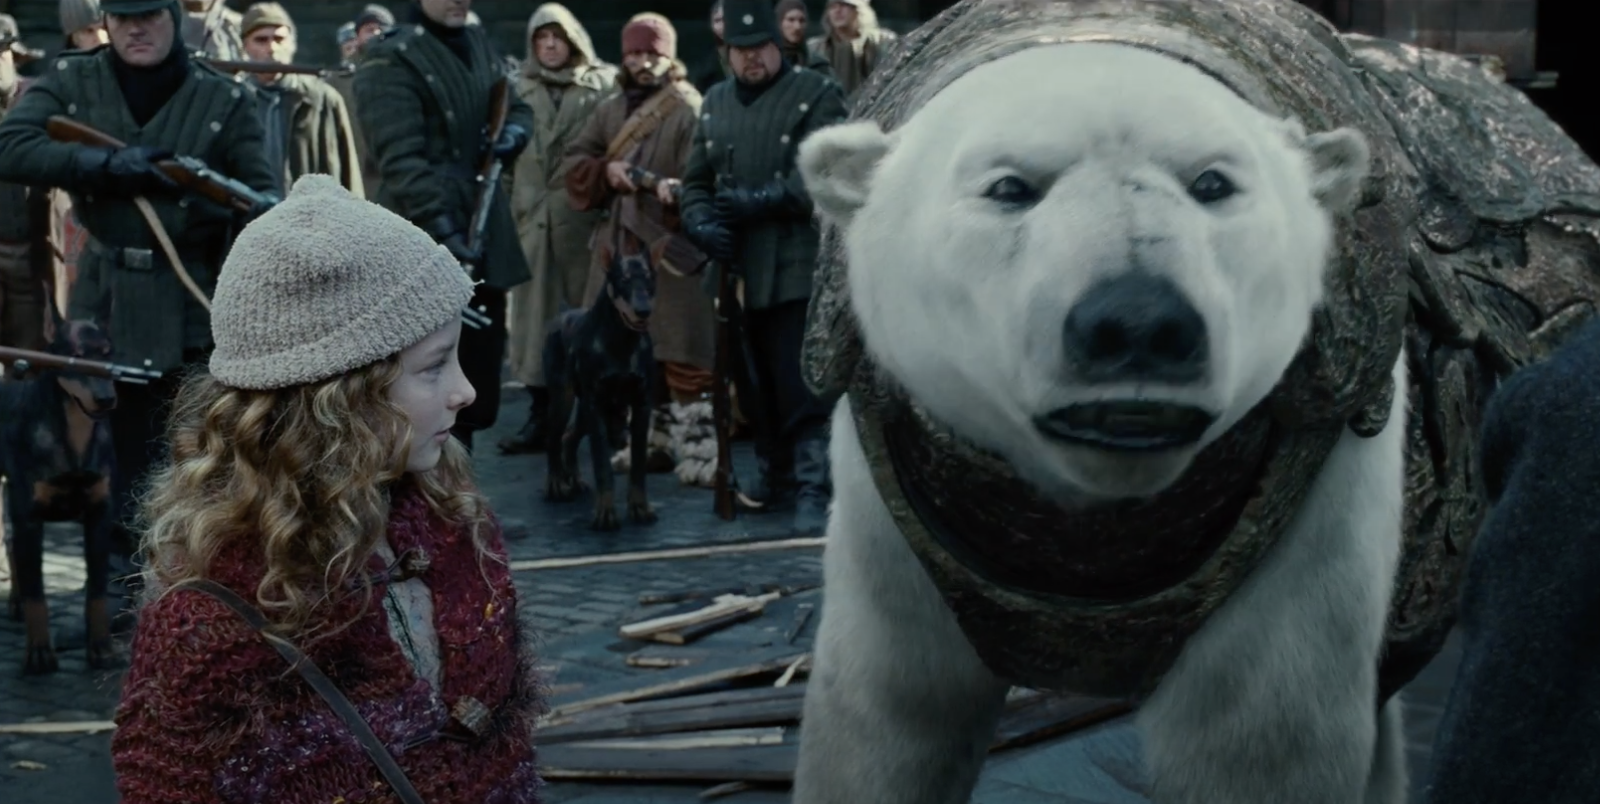 A young girl looks at a polar bear in the film